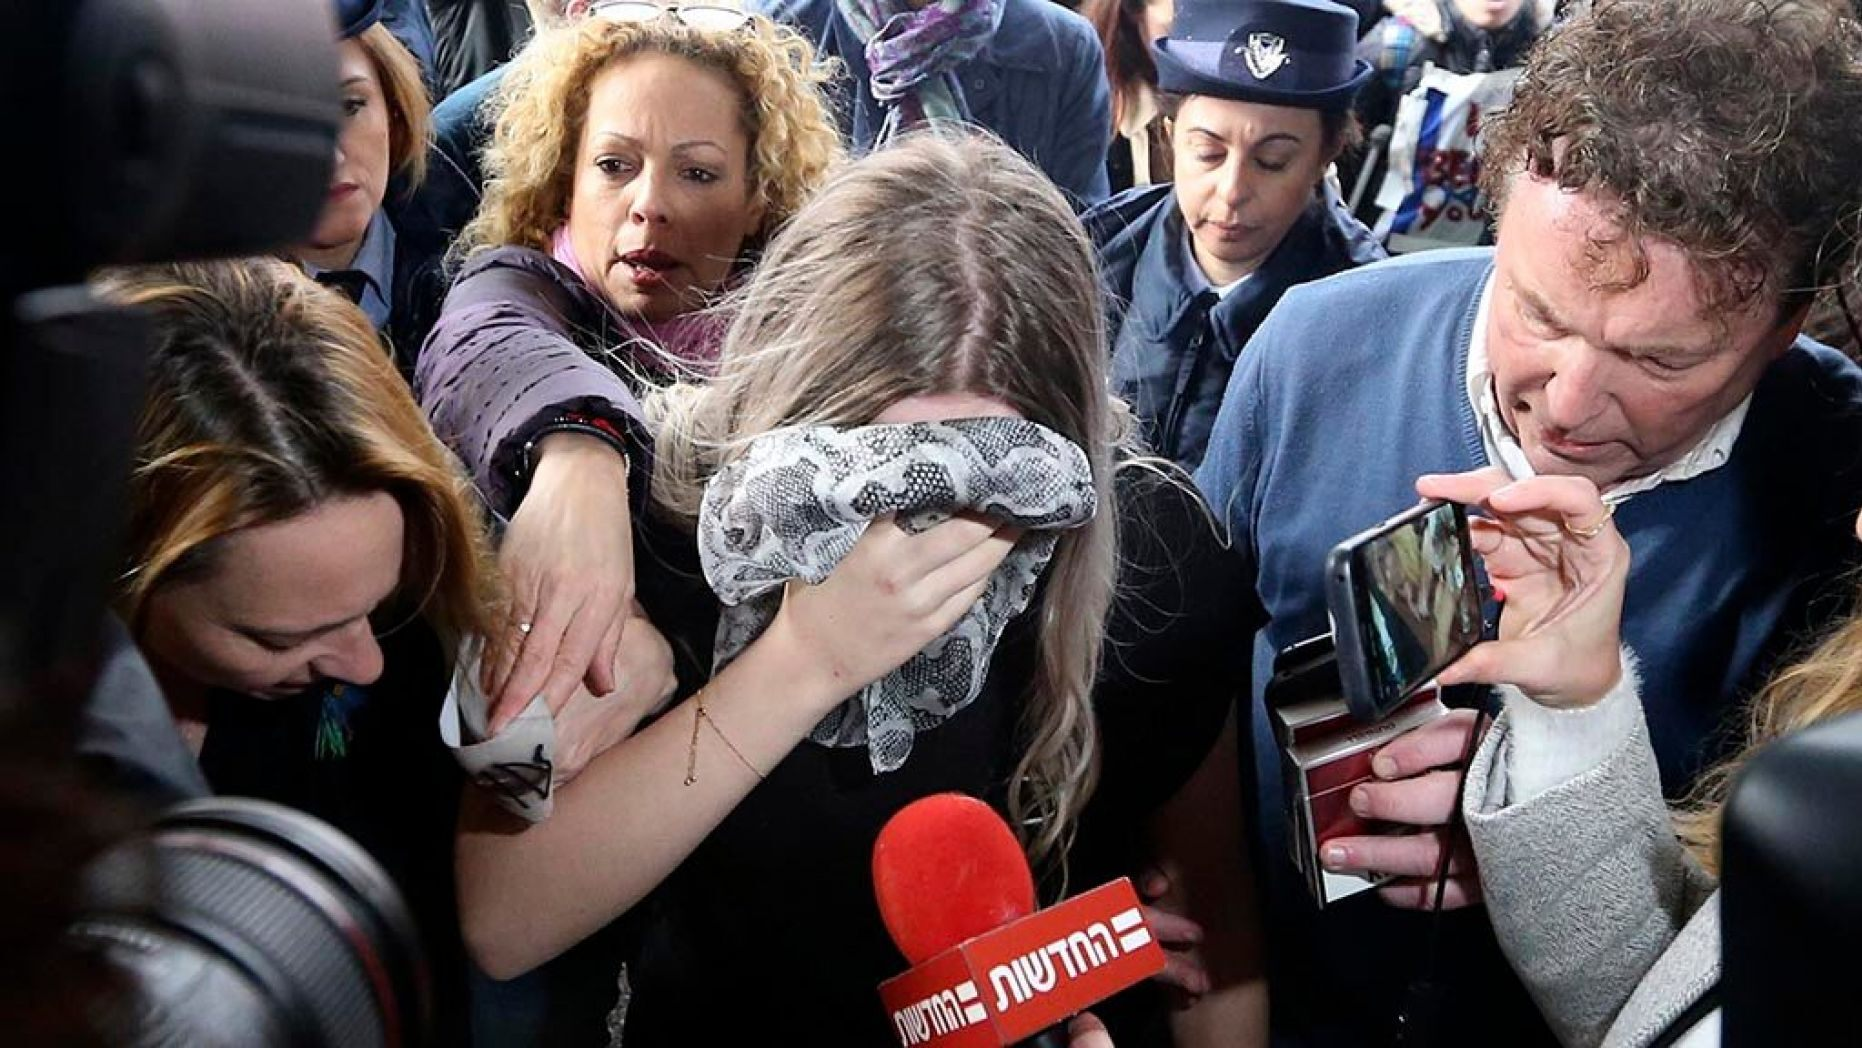 A 19-year-old British woman, center, who was found guilty of making up claims she was raped by up to 12 Israelis arrives at Famagusta District Court for sentencing on Tuesday, Jan. 7, 2020. She insisted she was raped and was coerced by investigators to retract her claim.